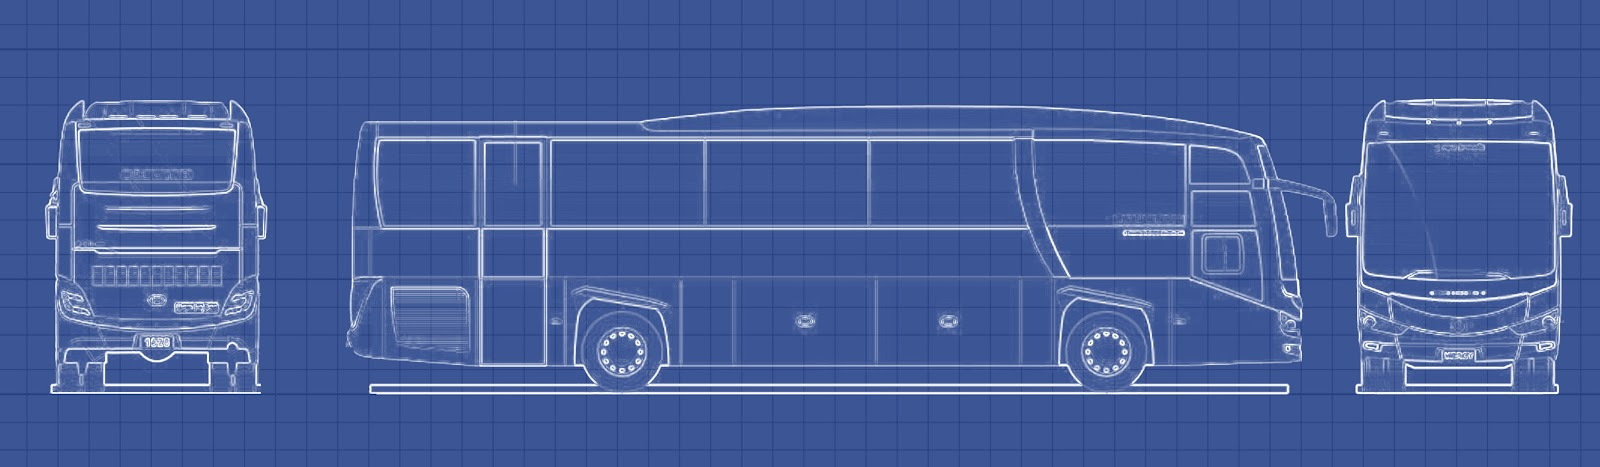 Blueprint adalah pengertian blueprint membuat model bus dengan contoh blueprint bus indonesia malvernweather Choice Image